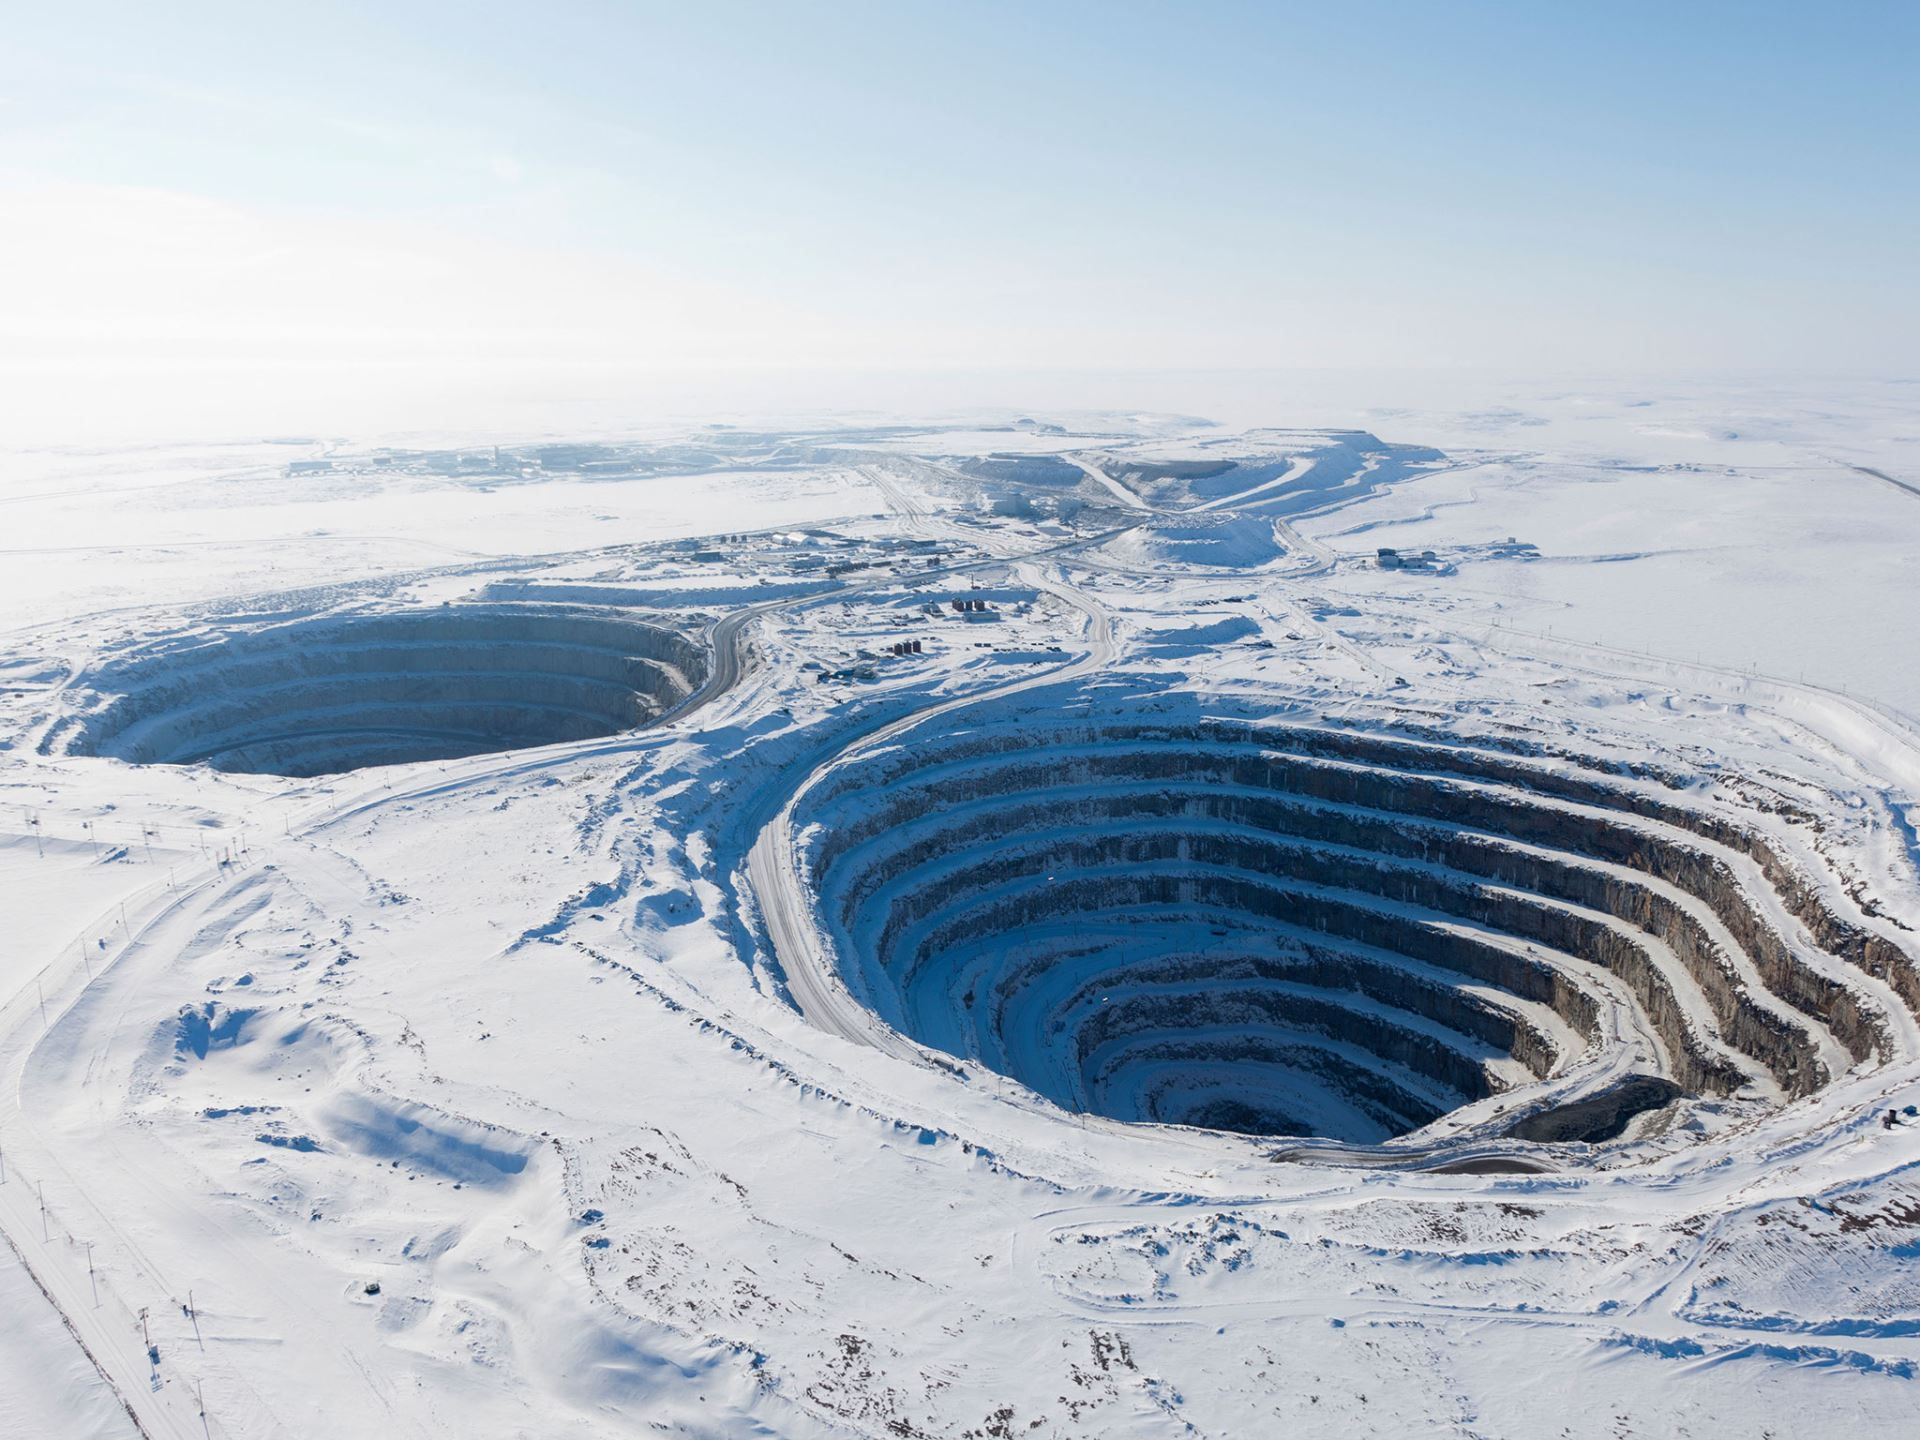 Deepest Holes in the World -  Diavik Diamond Mine, Northwest Territories, Canada On East Island in Lac de Gras in the Canadian Arctic, you'll find the Diavik Diamond Mind, accessible only by local airport and an ice road in permitting weather. The open-pit mine reaches depths of more than 600 feet. The site opened for production in 2003 and delivers 3,300 pounds of diamonds on average annually.